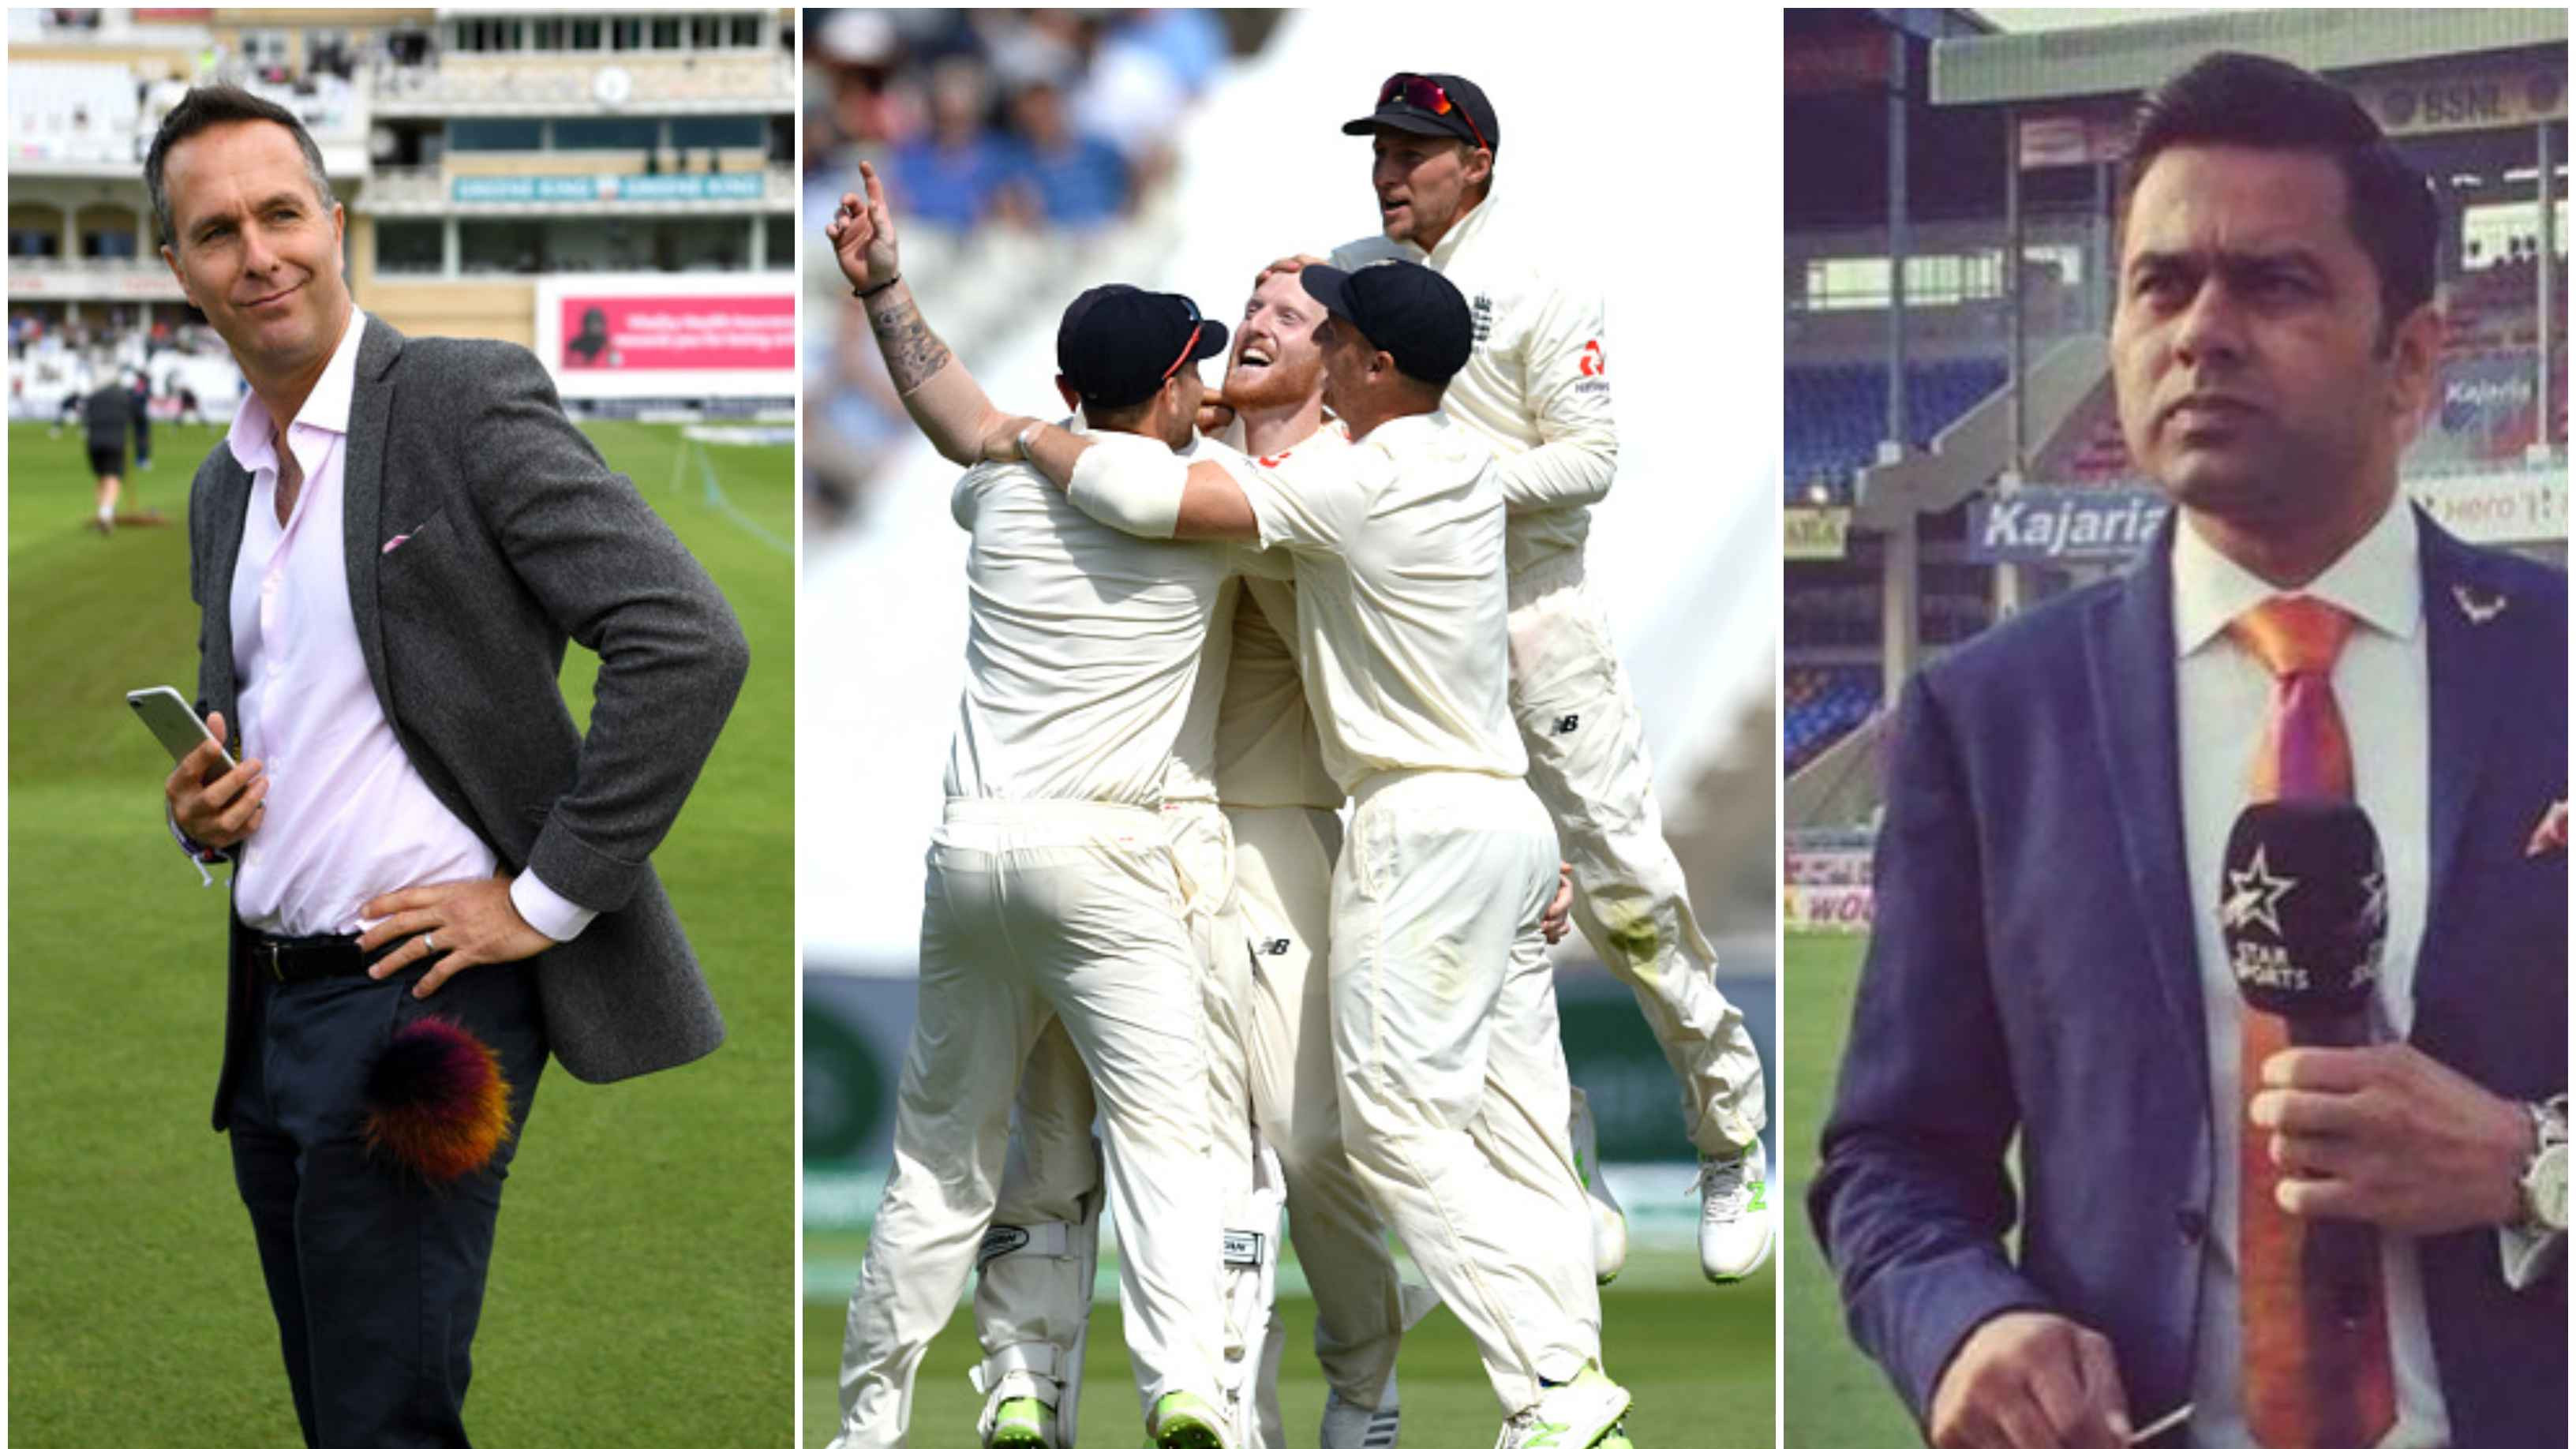 ENG v IND 2018: Twitter reacts as England secure a thrilling victory in the Edgbaston Test